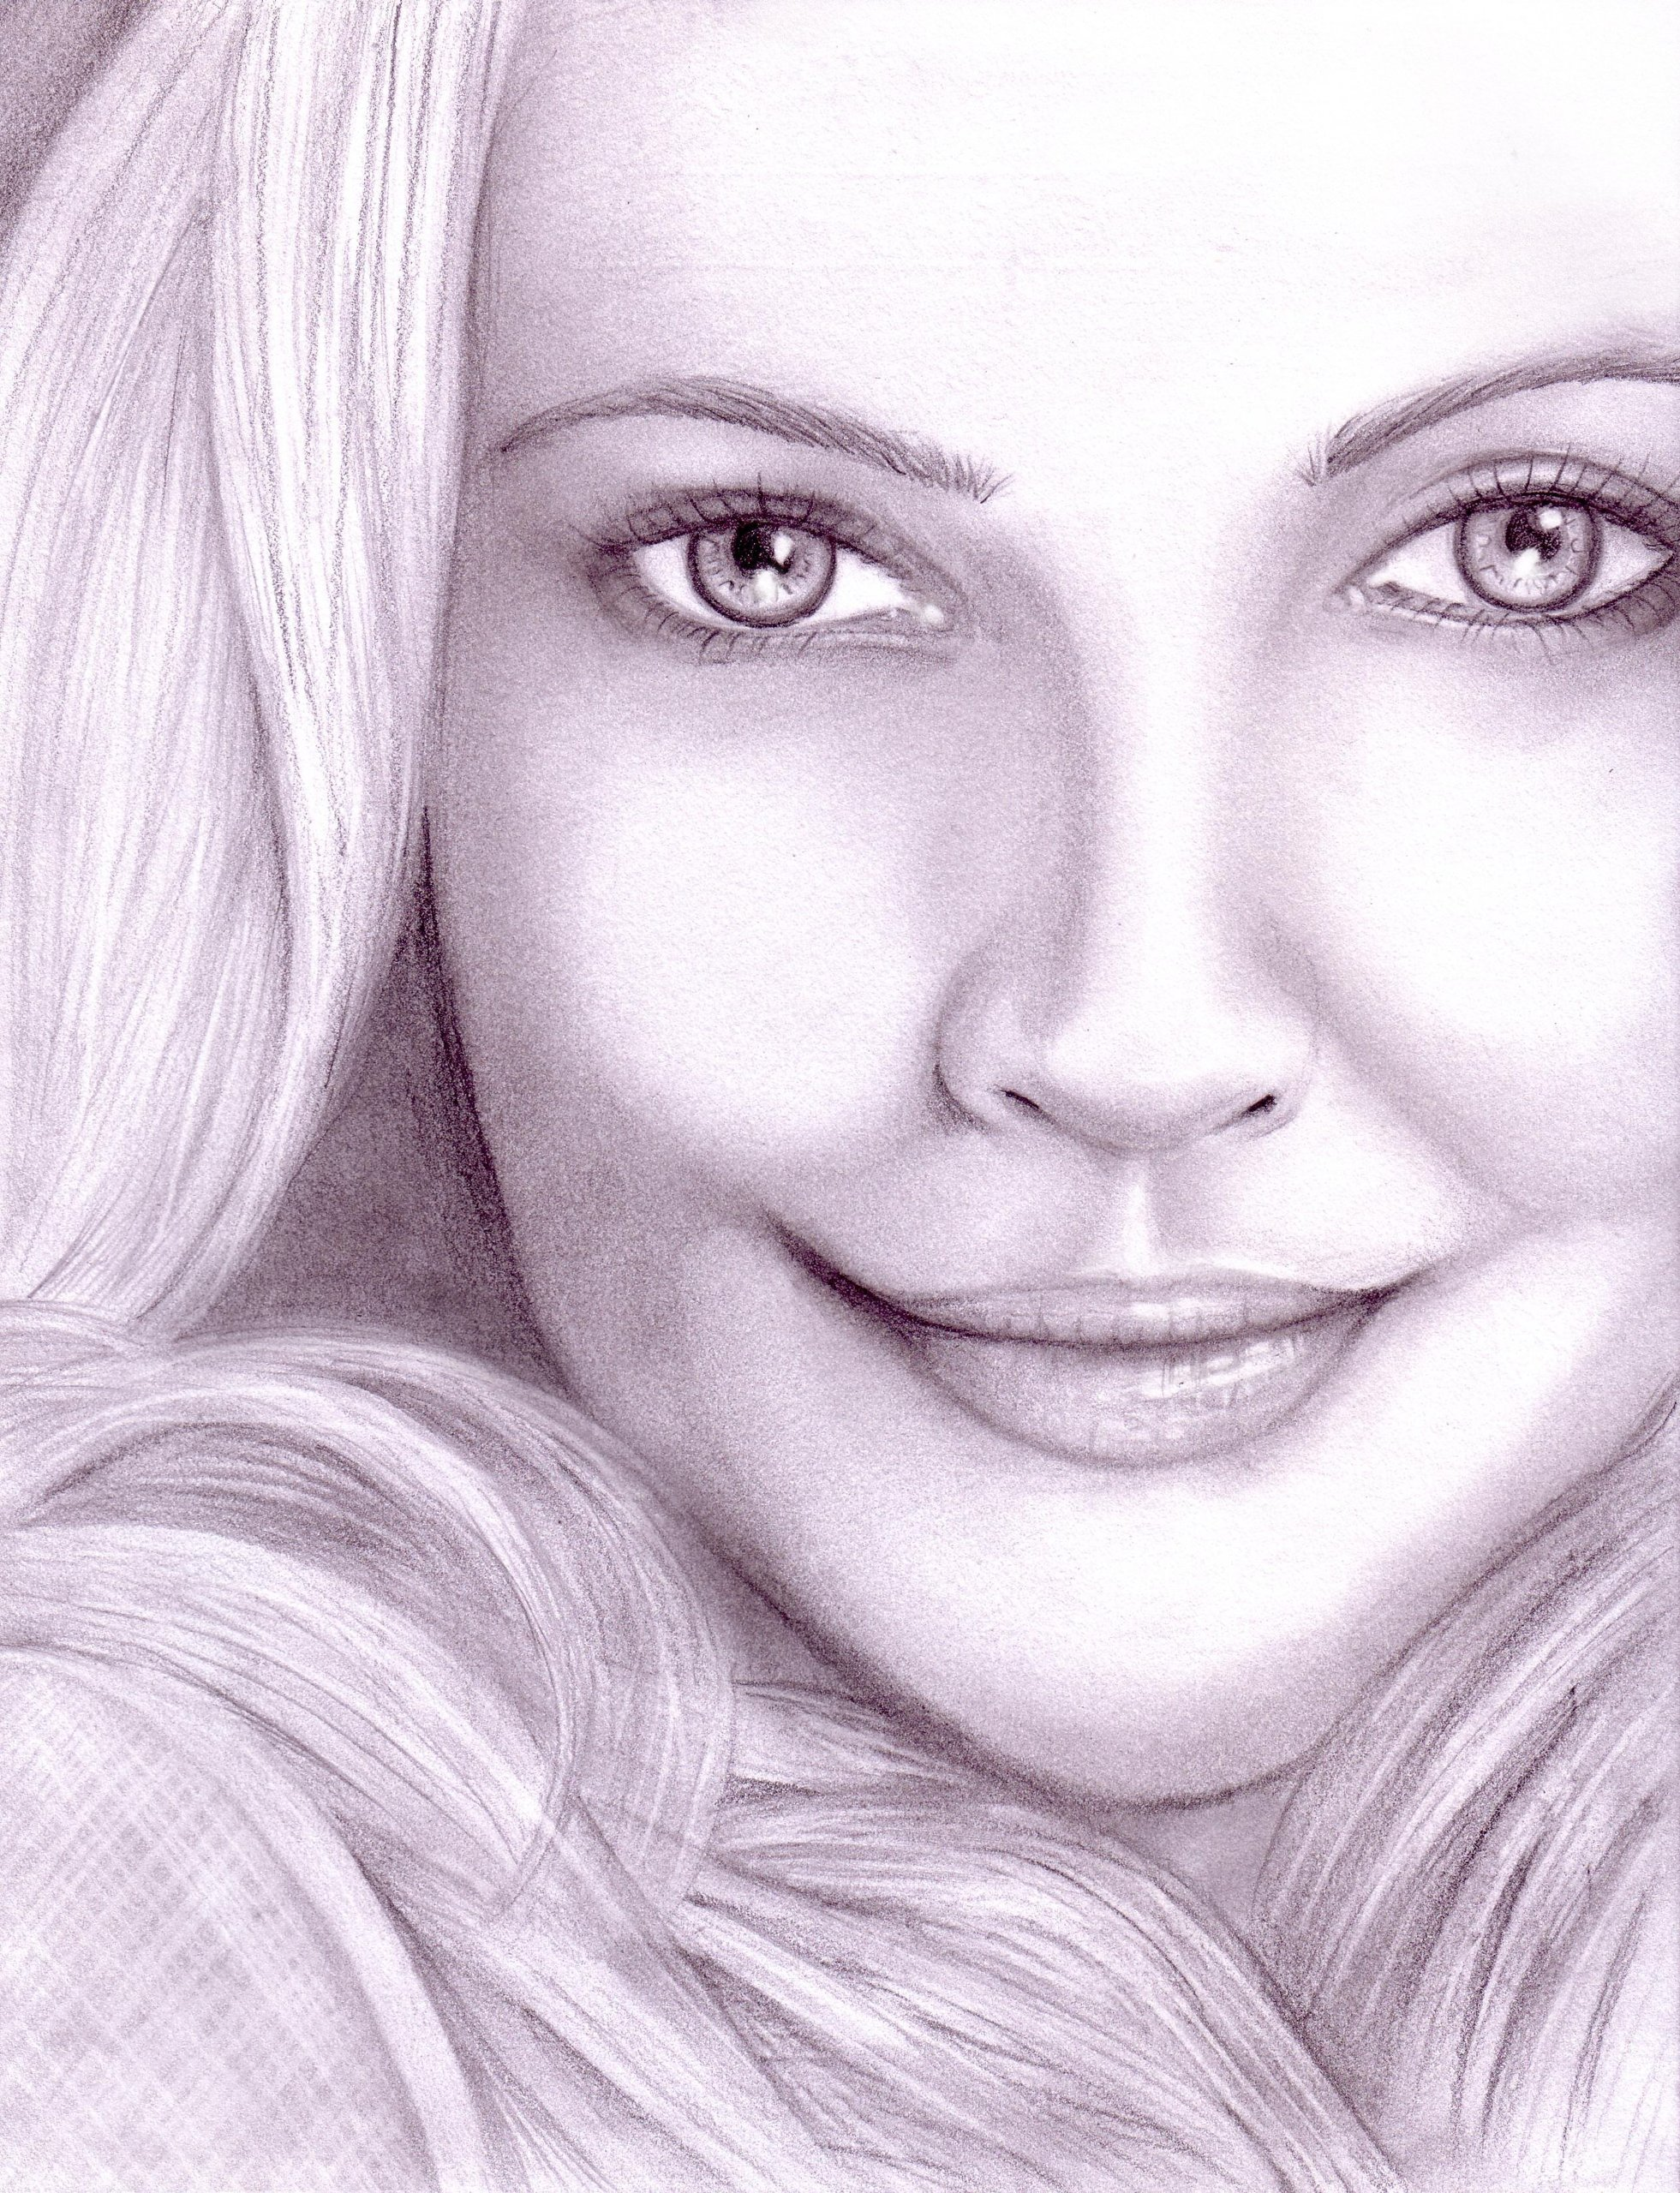 Drew Barrymore Drawings Drew Barrymore Drew Barrymore